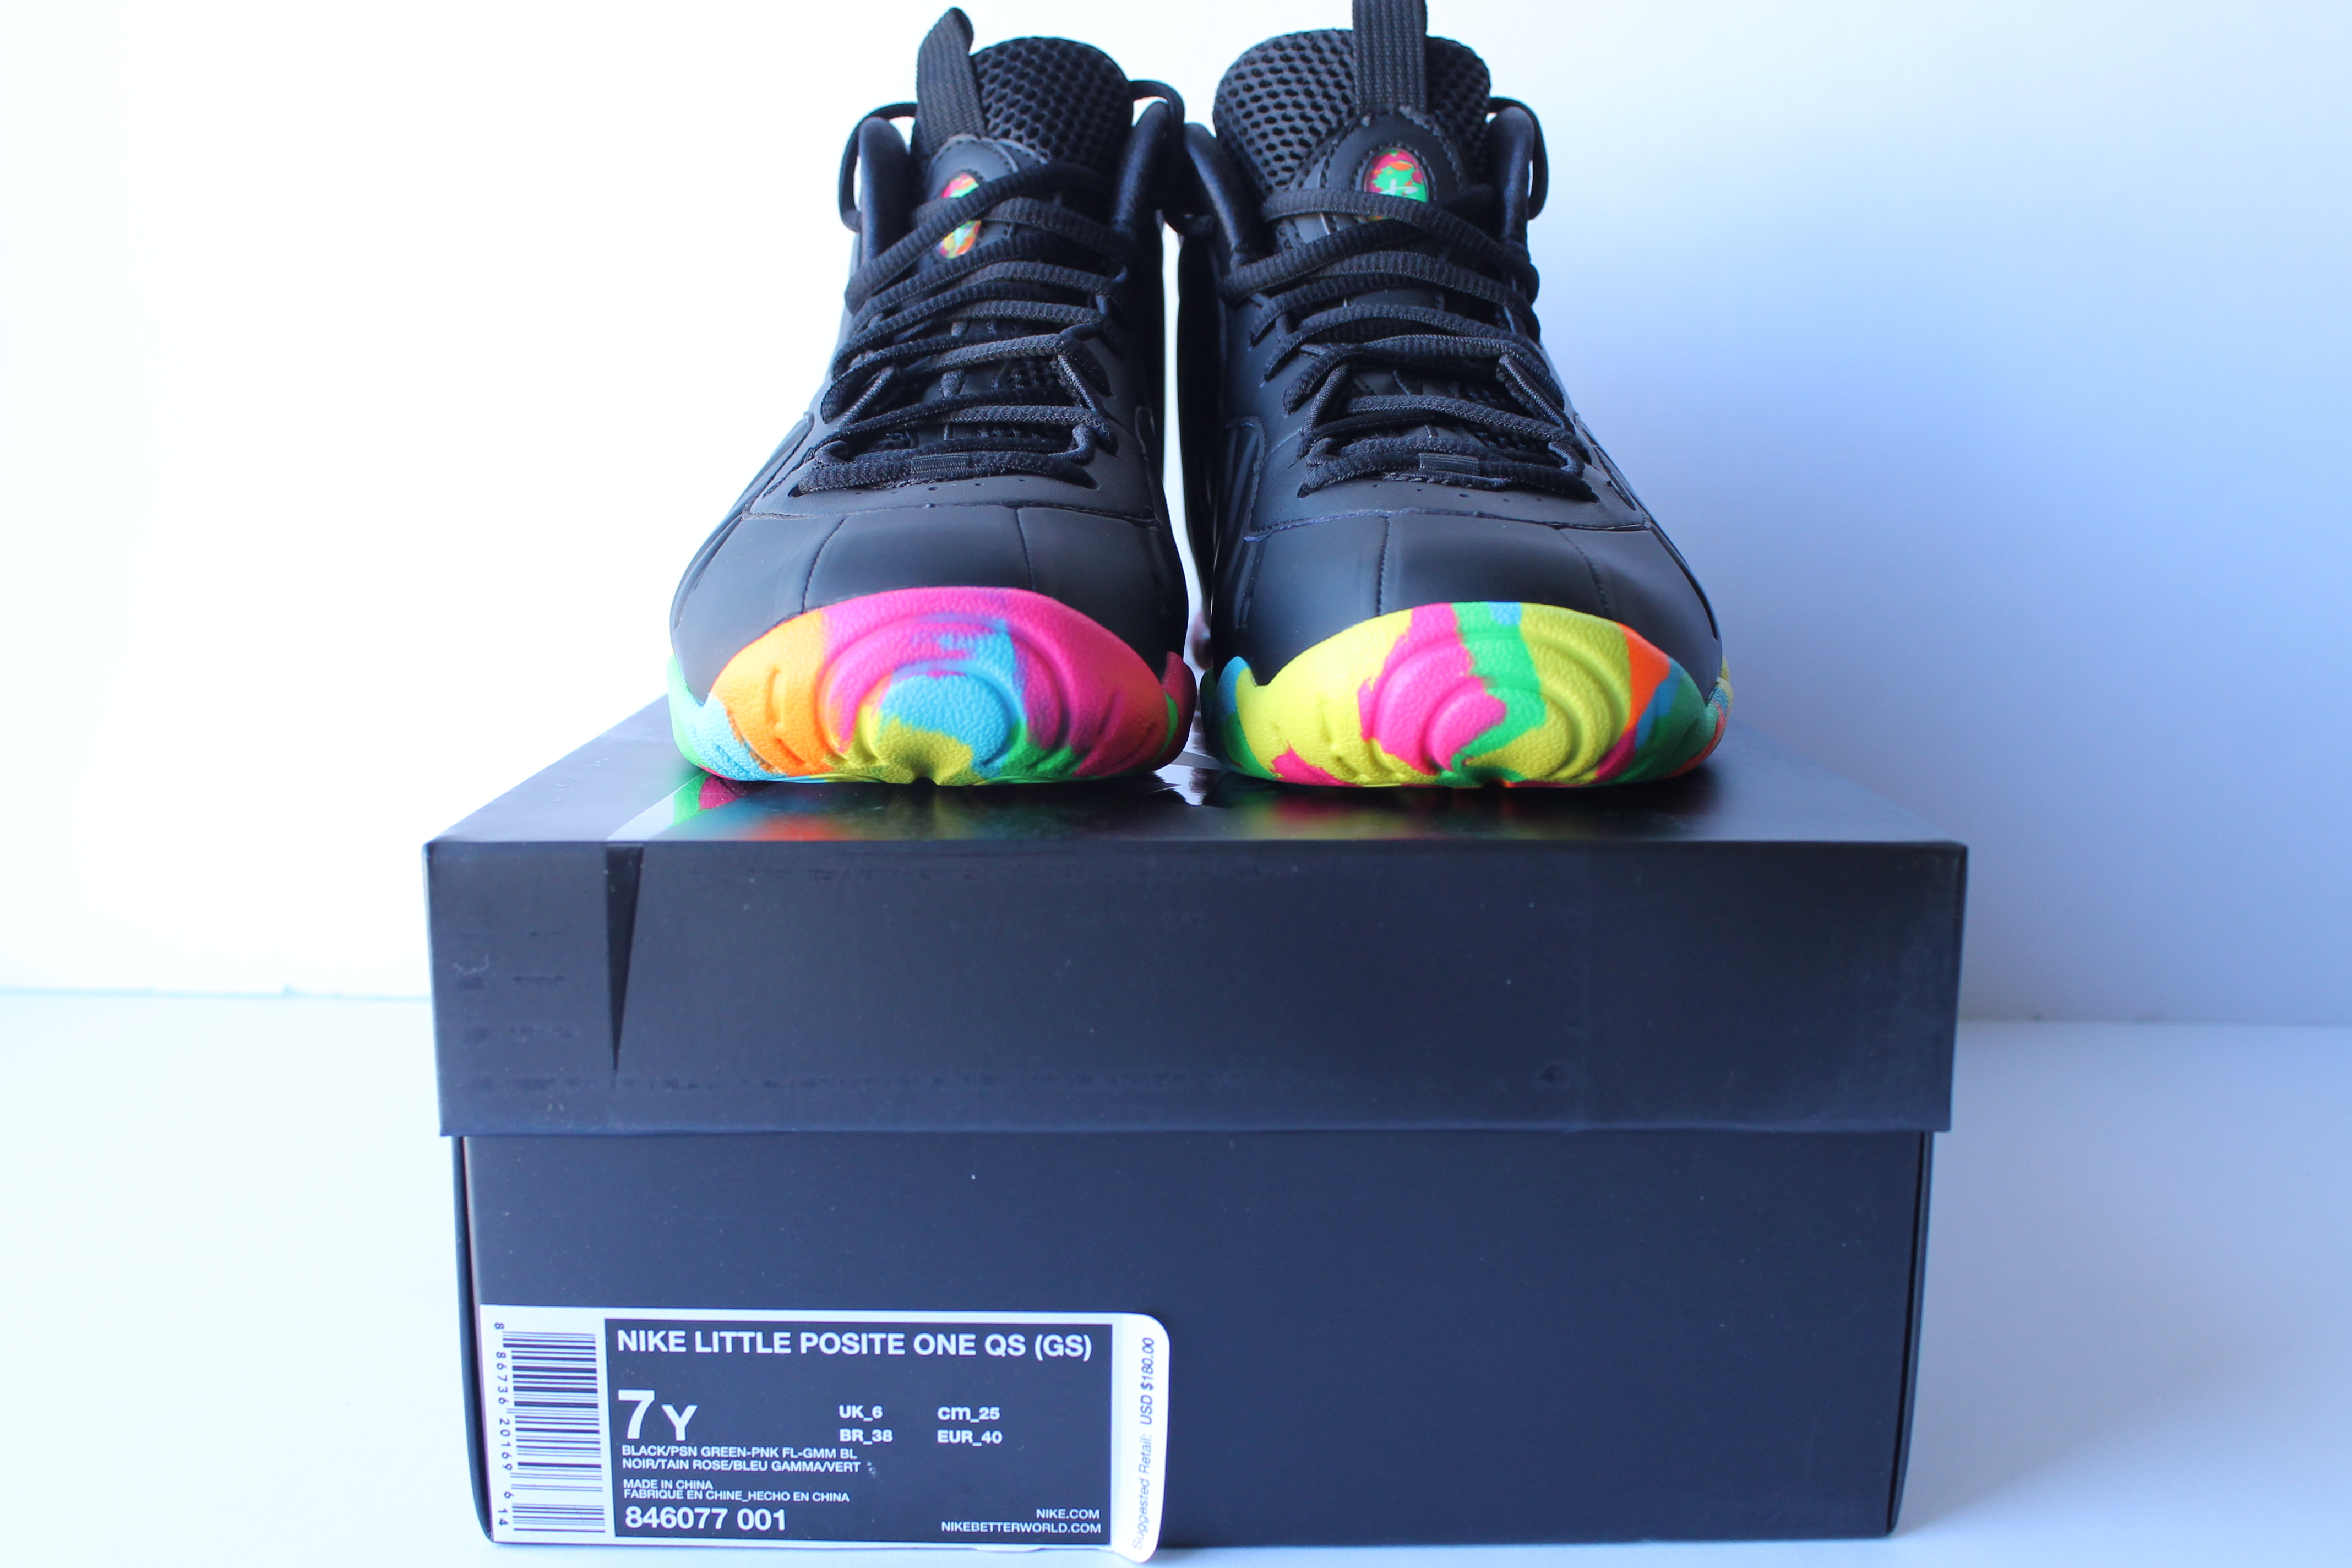 "f369c84c1177 Nike Little Posite One QS(GS) – Black ""Fruity Pebble ..."